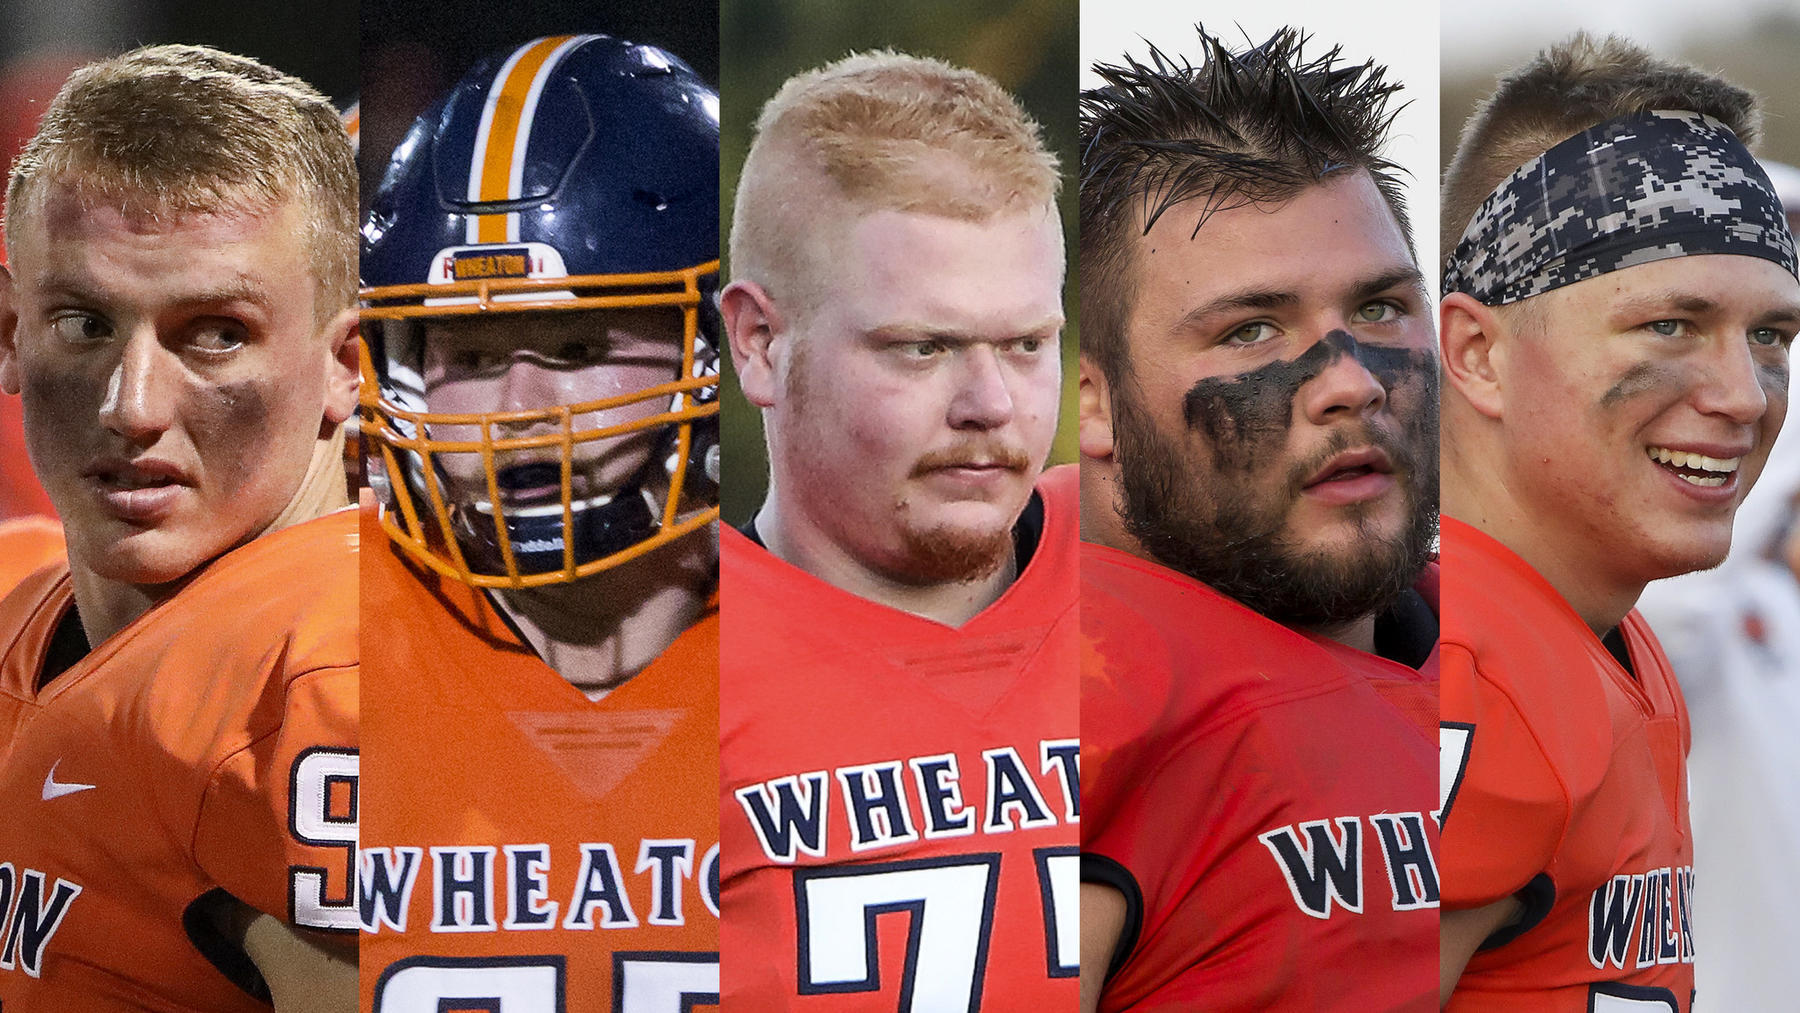 5 Wheaton College football players face felony charges in hazing incident